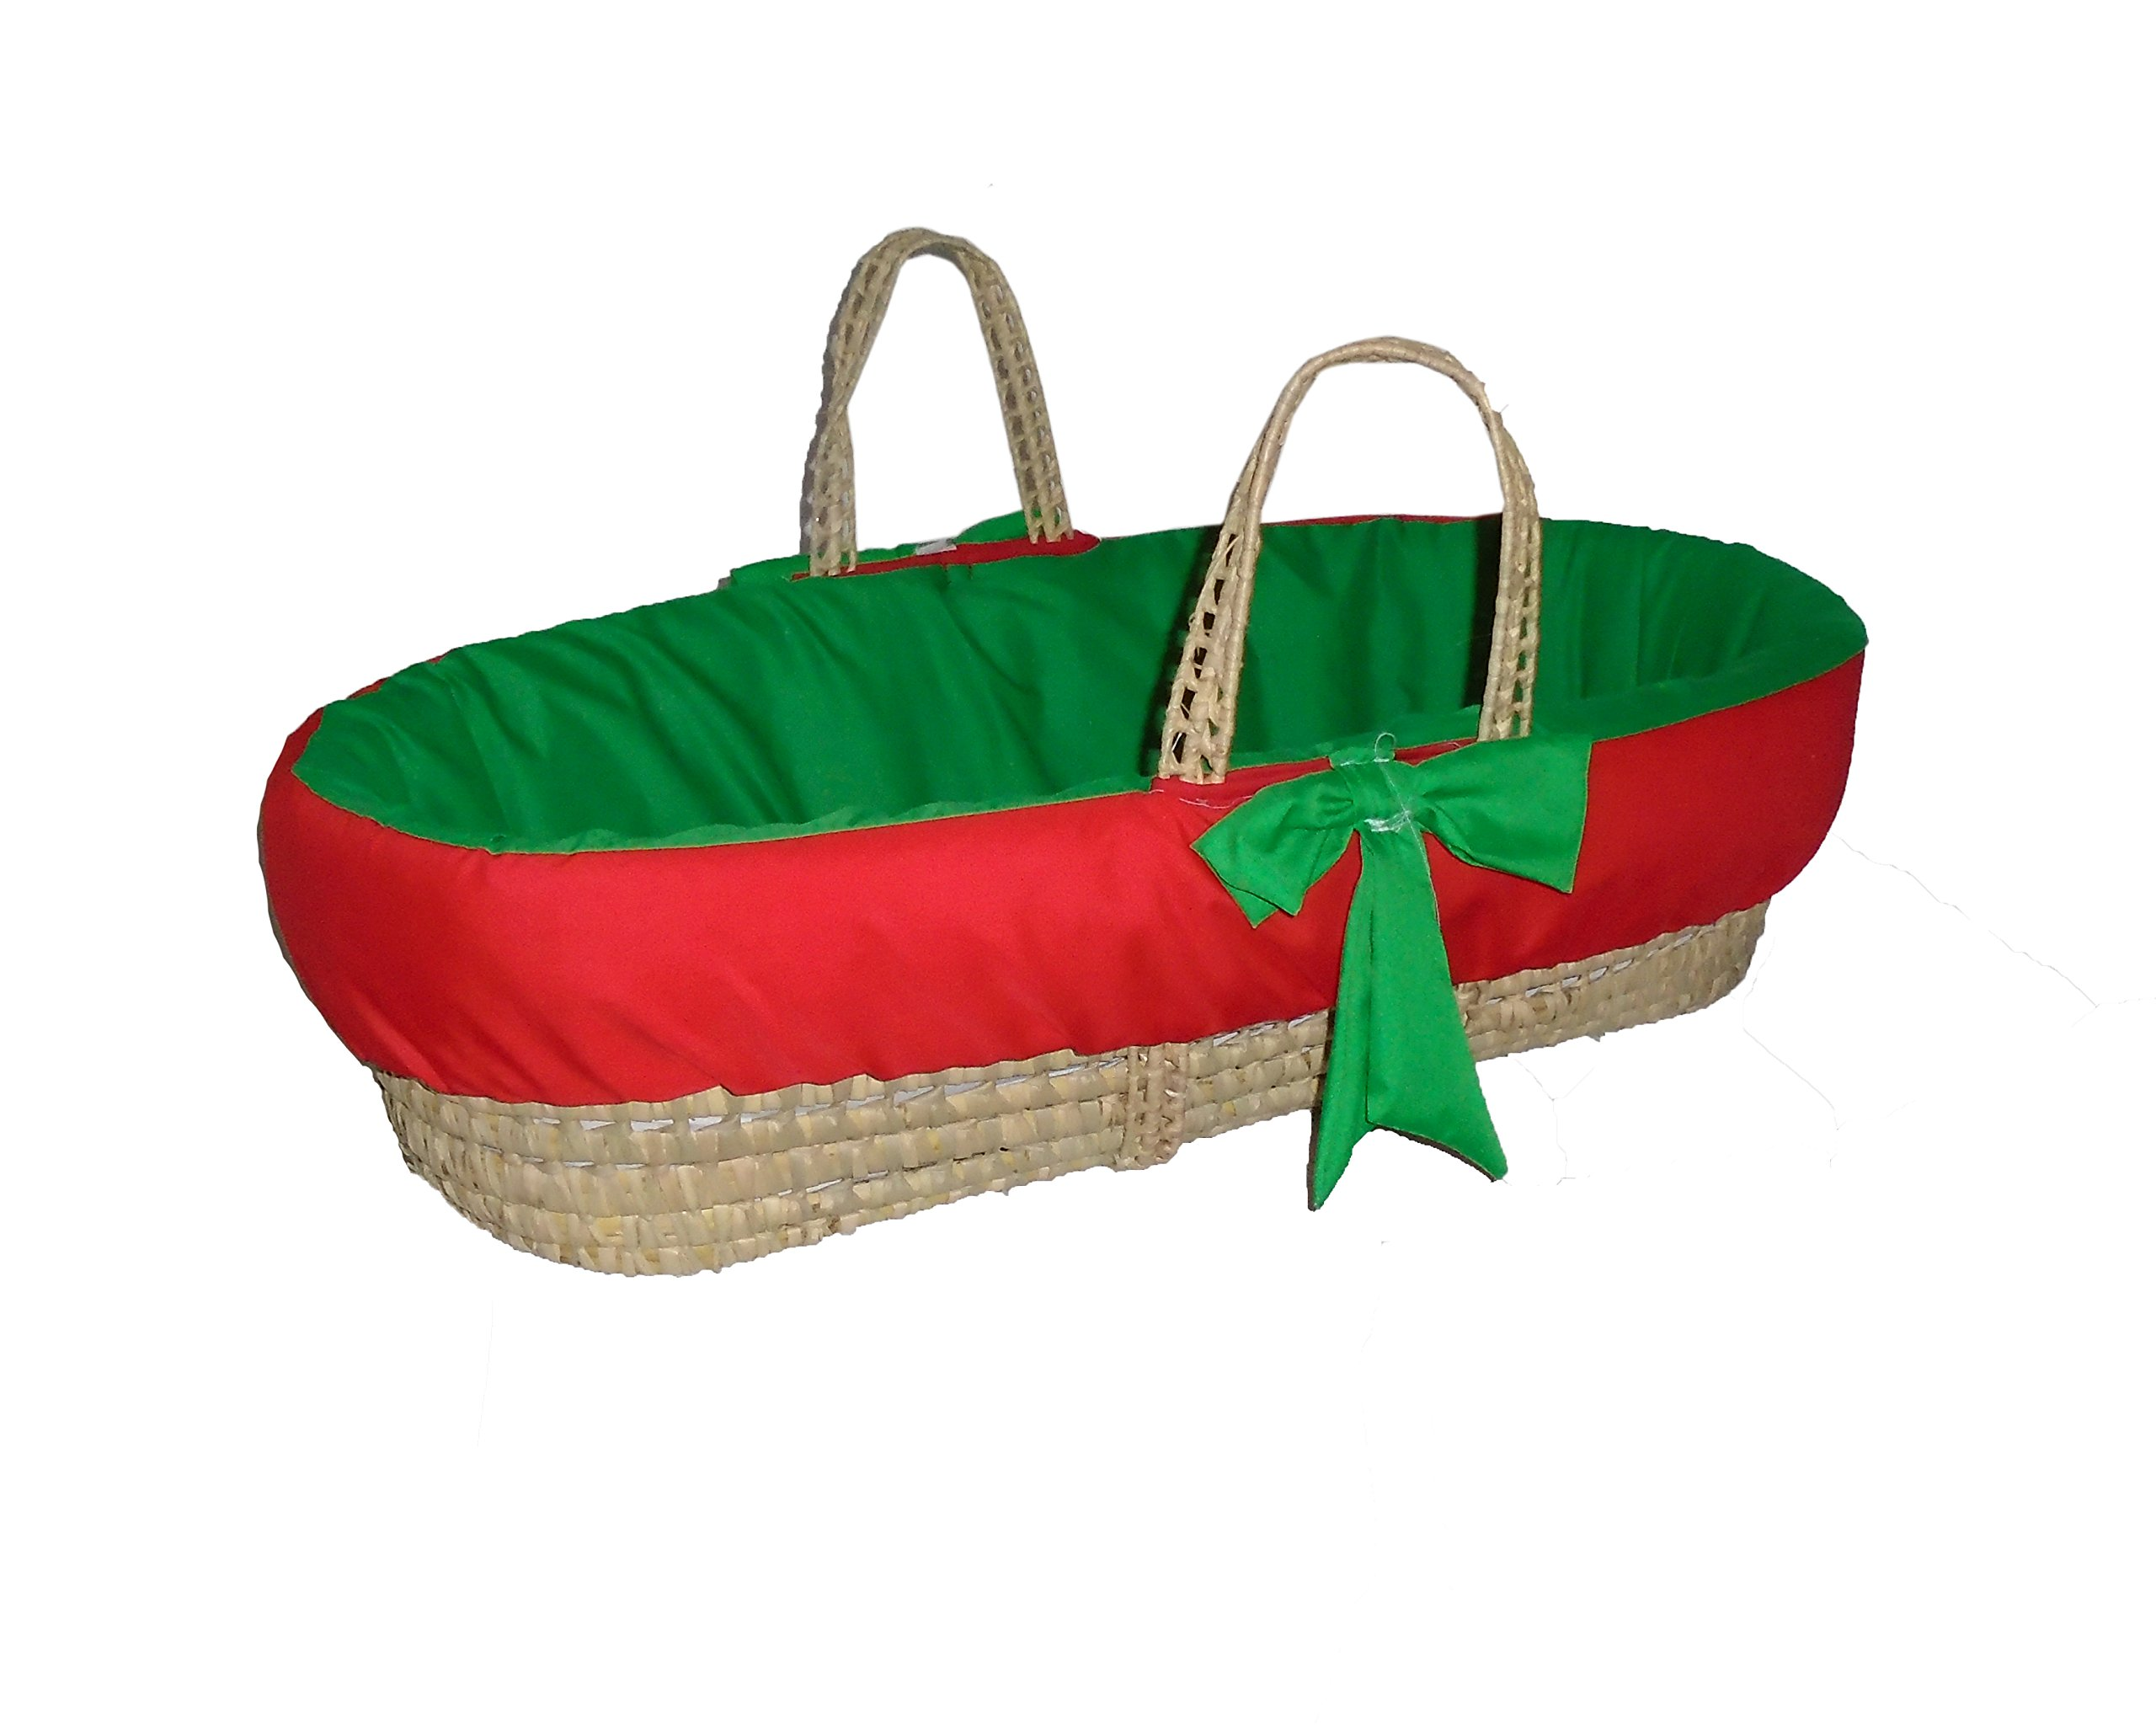 Baby Doll Bedding Holiday Solid Reversible Moses Basket, Red/Green by BabyDoll Bedding